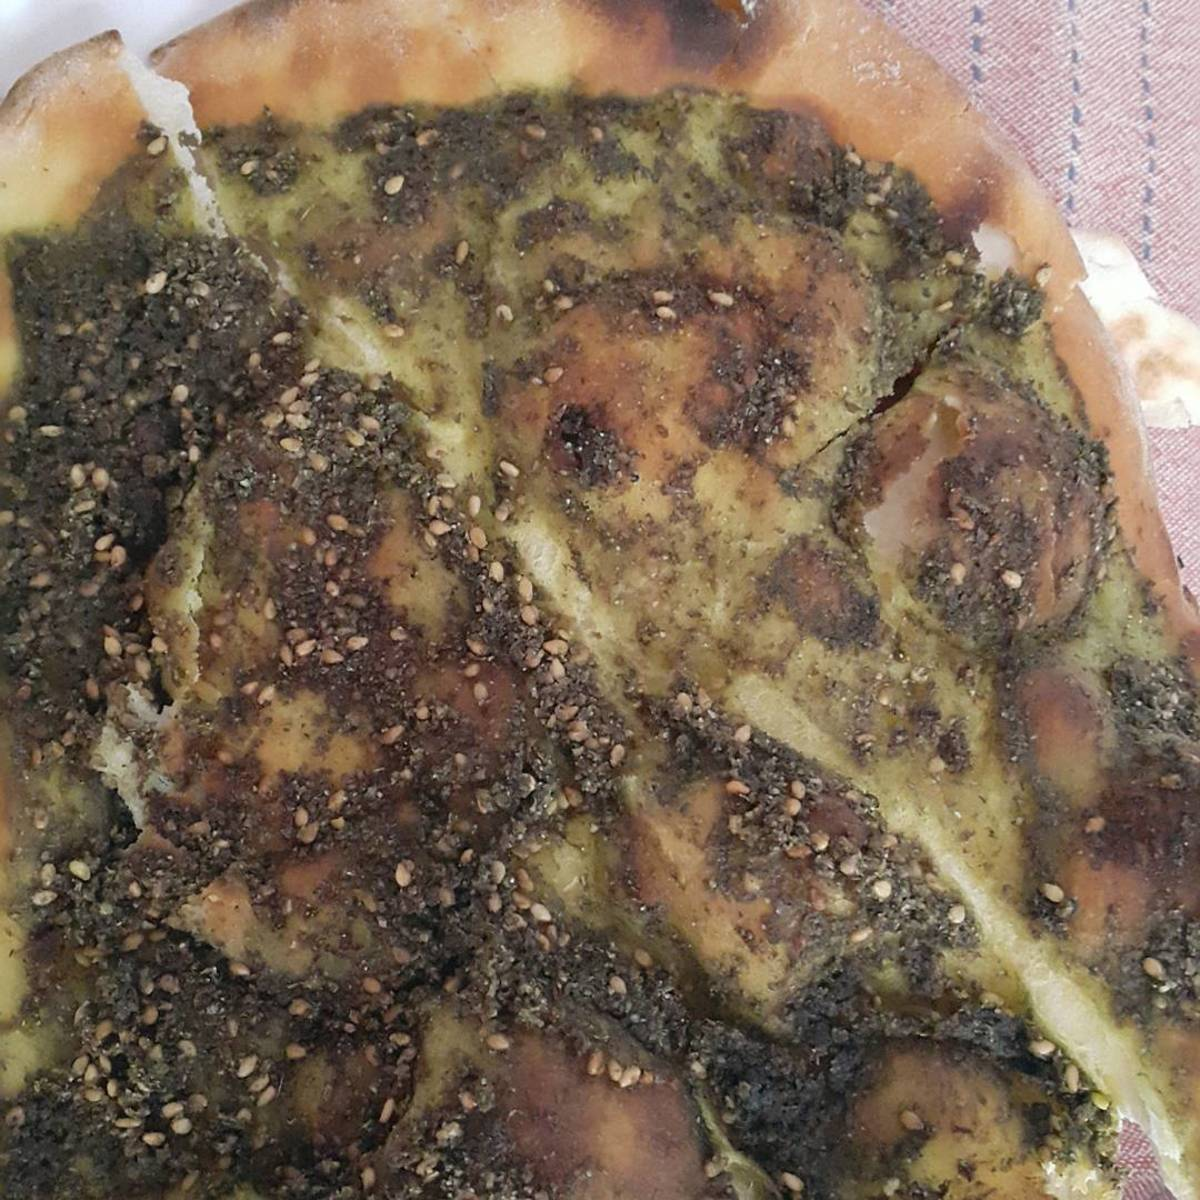 Fatayer Za'atar is a pizza like crust sprinkled with a generous amount of a herb called za'atar.